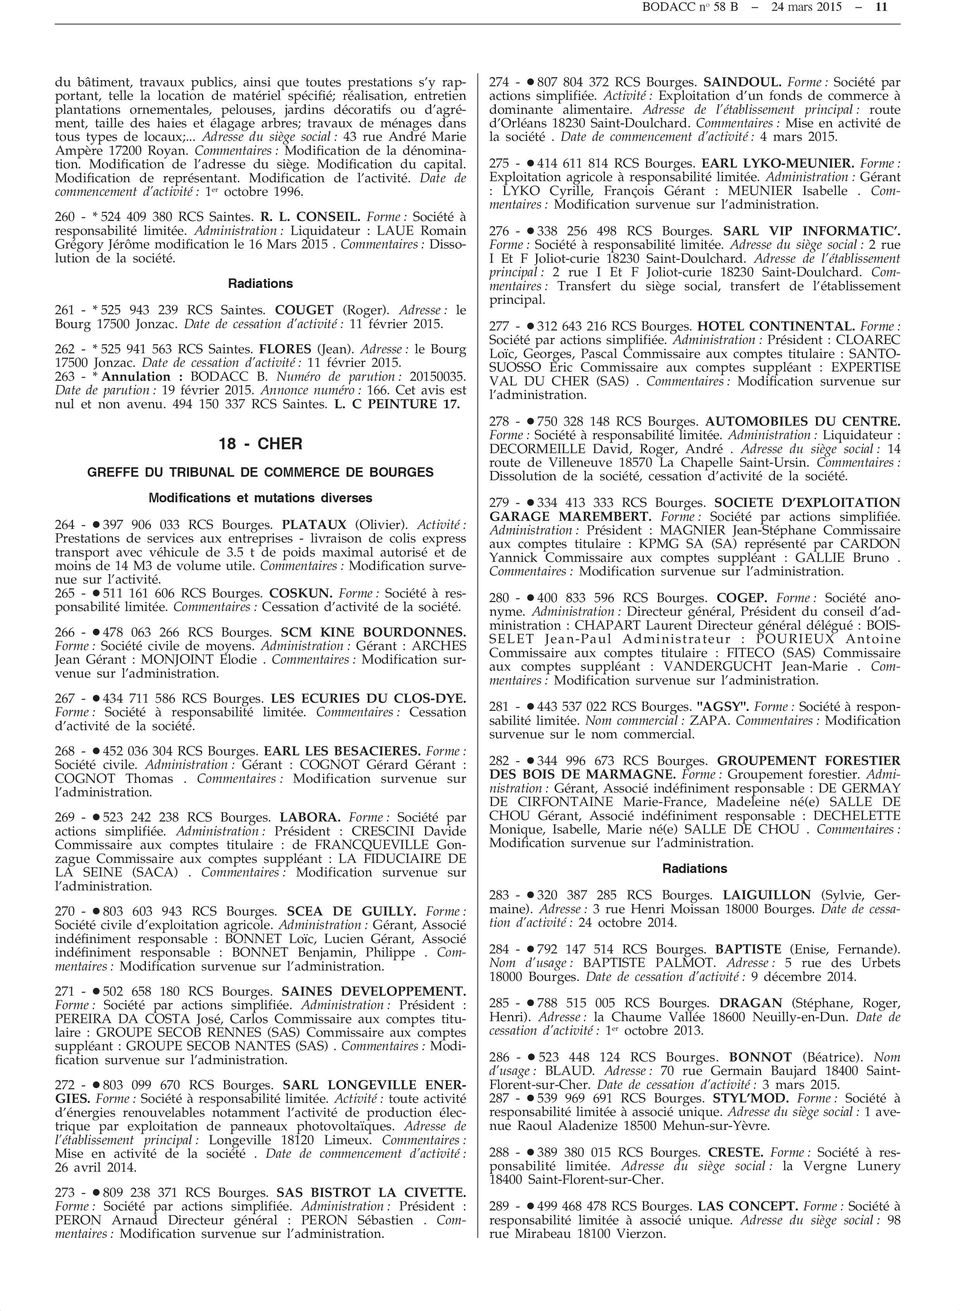 Commentaires : Modification de la dénomination. Modification de l adresse du siège. Modification du capital. Modification de représentant. Modification de l activité.